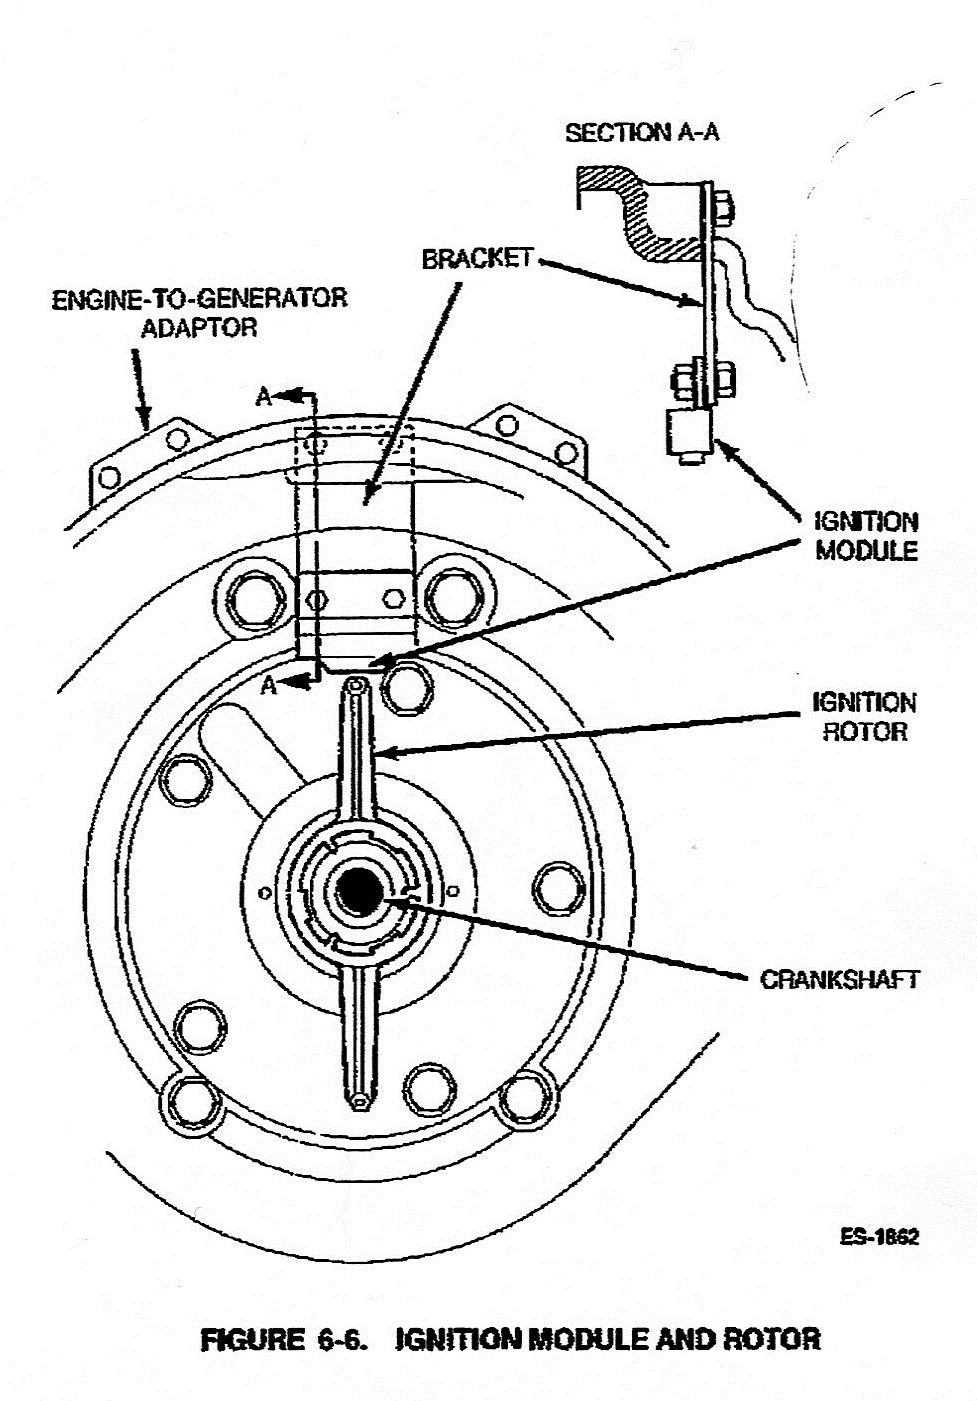 2010 08 04_175520_Ignition_module_and_rotor i have a onan 6 5 kw emerald plus rv generator model nhe fa onan generator emerald 1 wiring diagram at love-stories.co